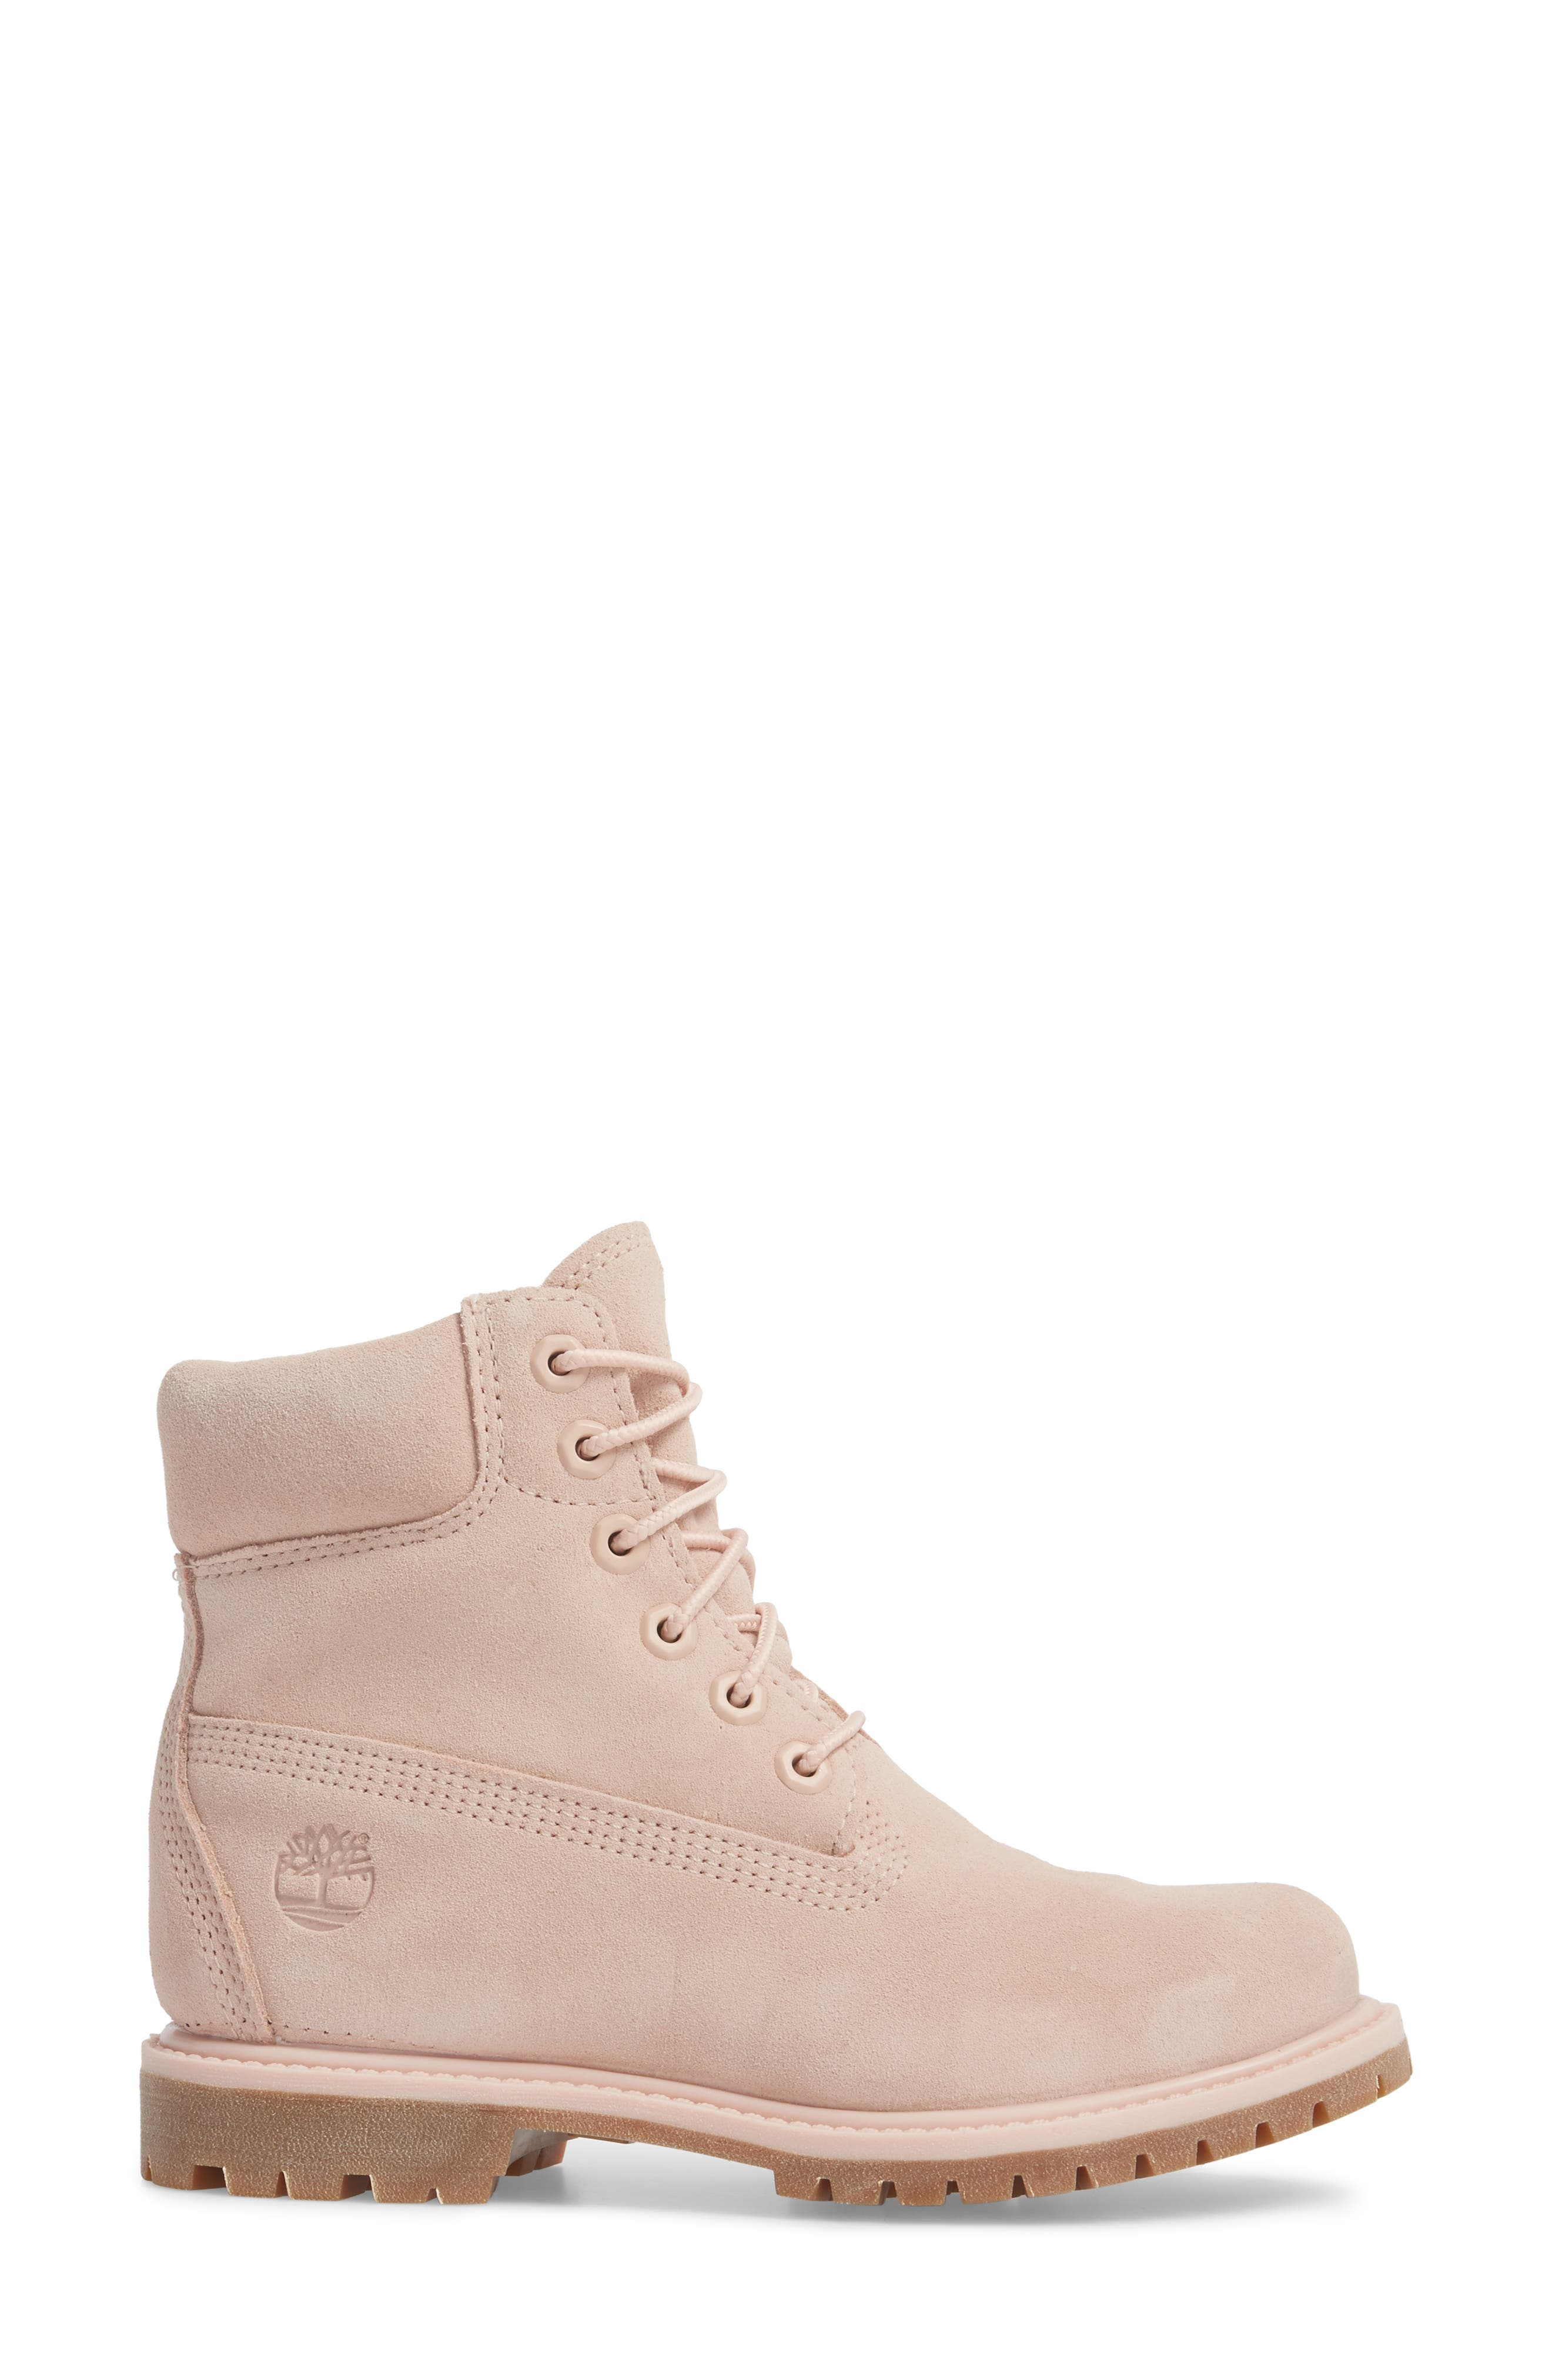 6 Inch Boot,                             Alternate thumbnail 9, color,